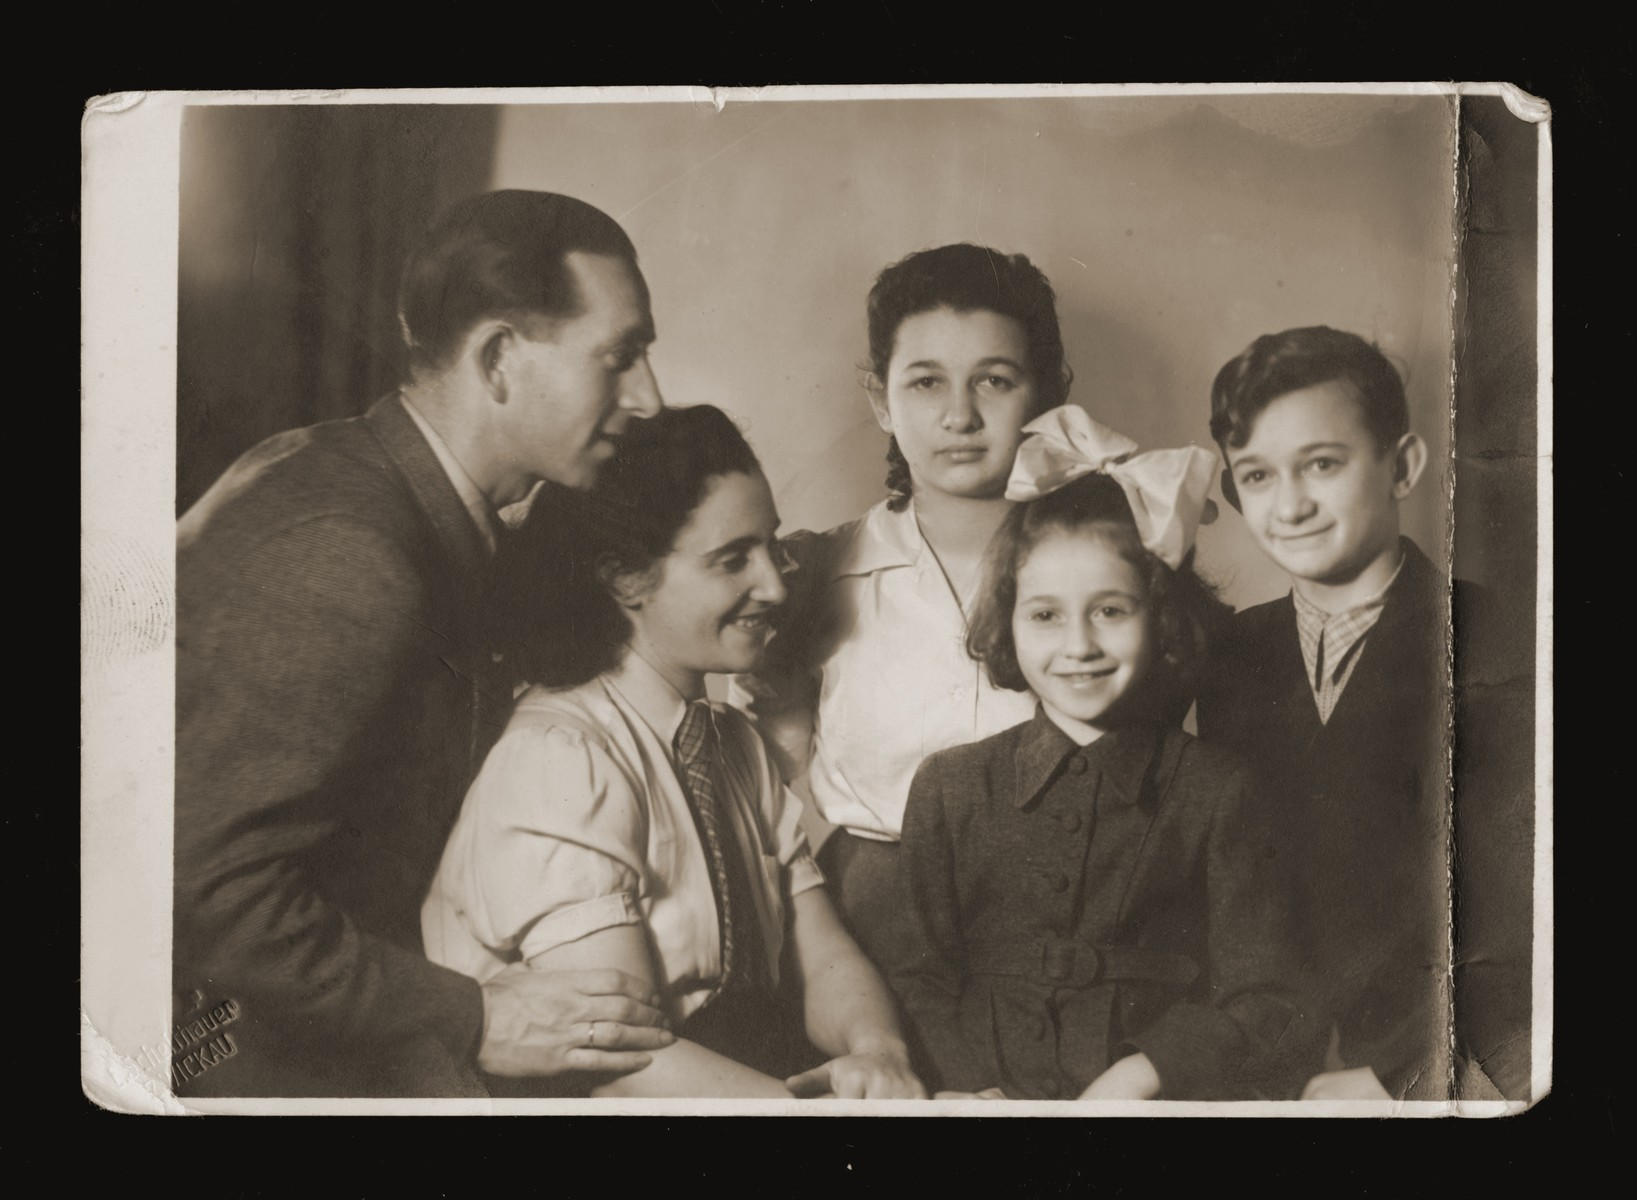 Portrait of the Malach family taken on Passover.